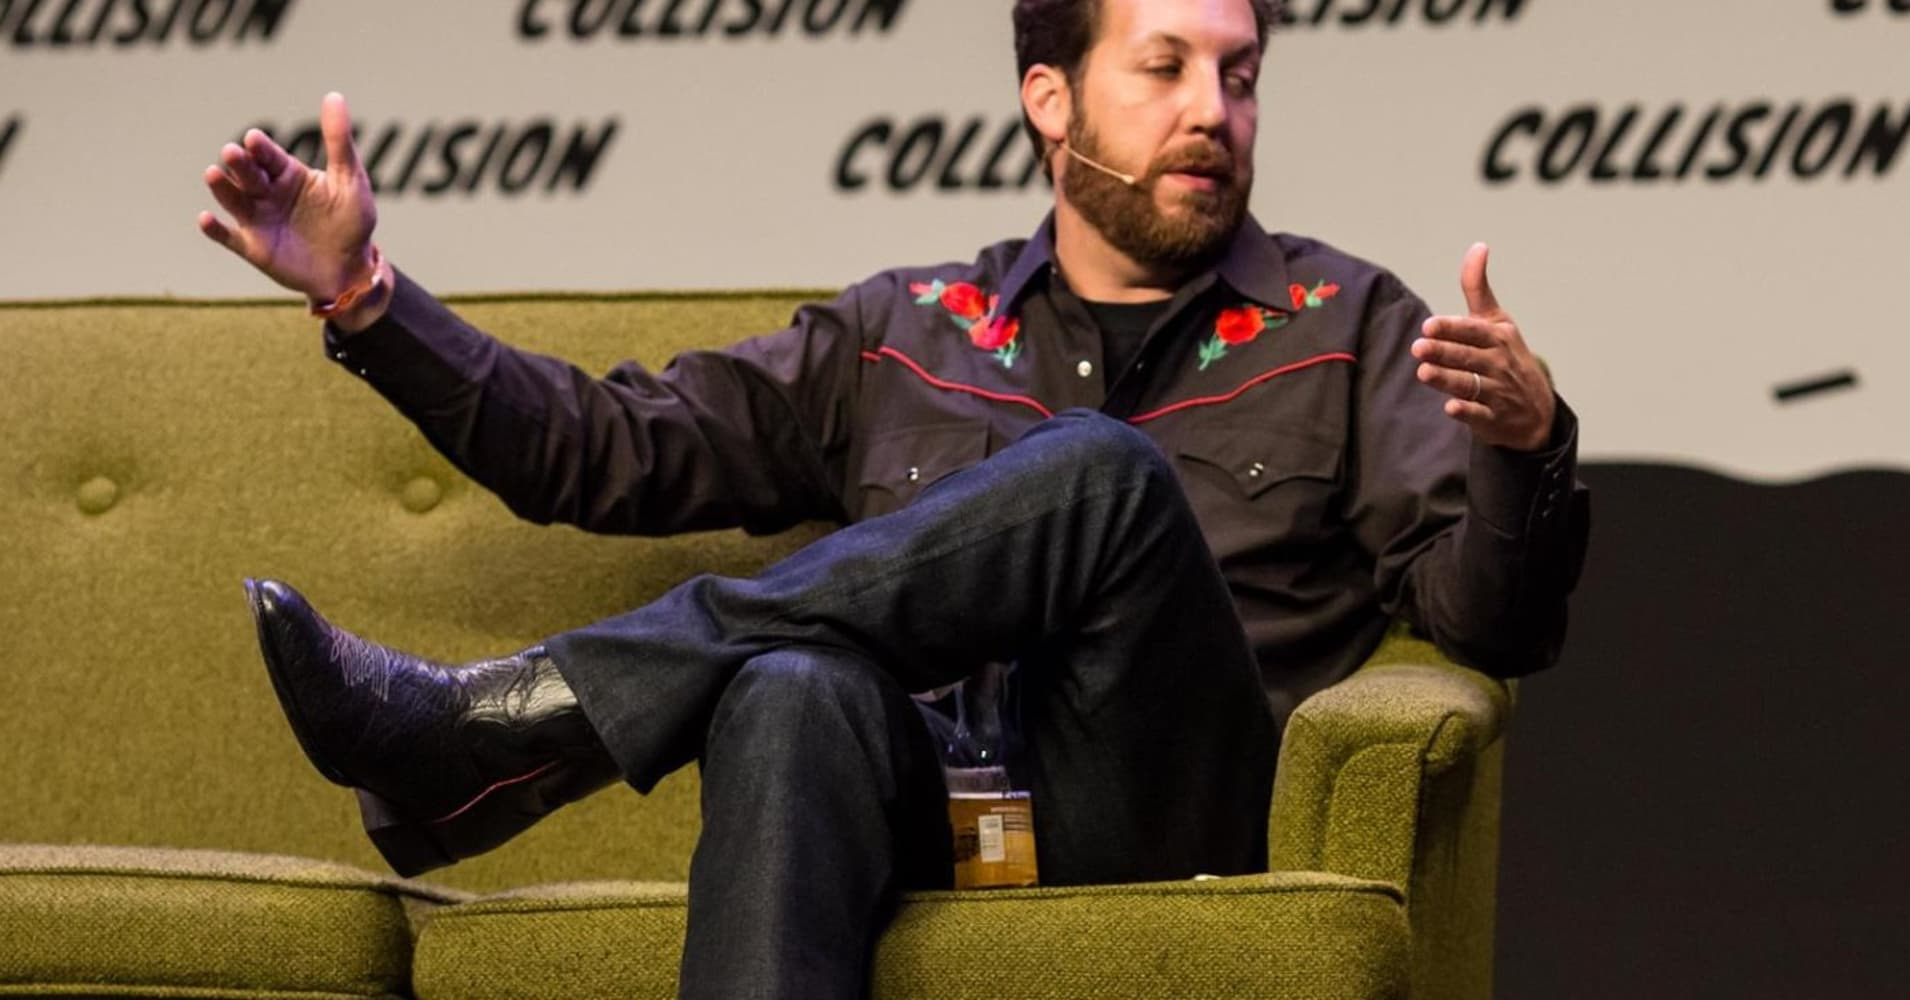 Chris Sacca: 'Billionaire is an incredibly magical word in our language'